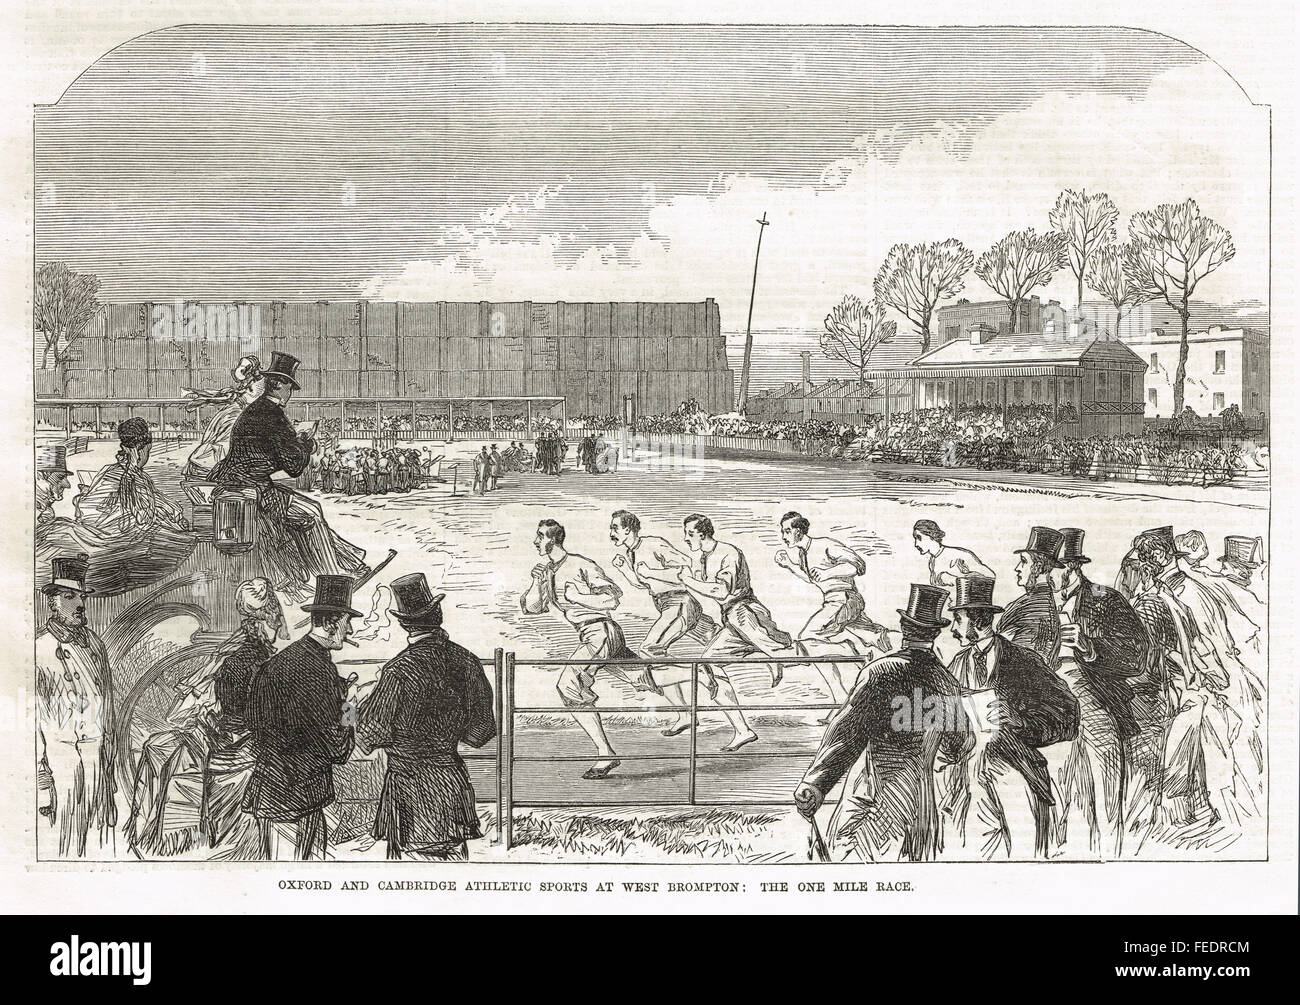 Oxford V Cambridge one mile race, West Brompton, 1869 - Stock Image